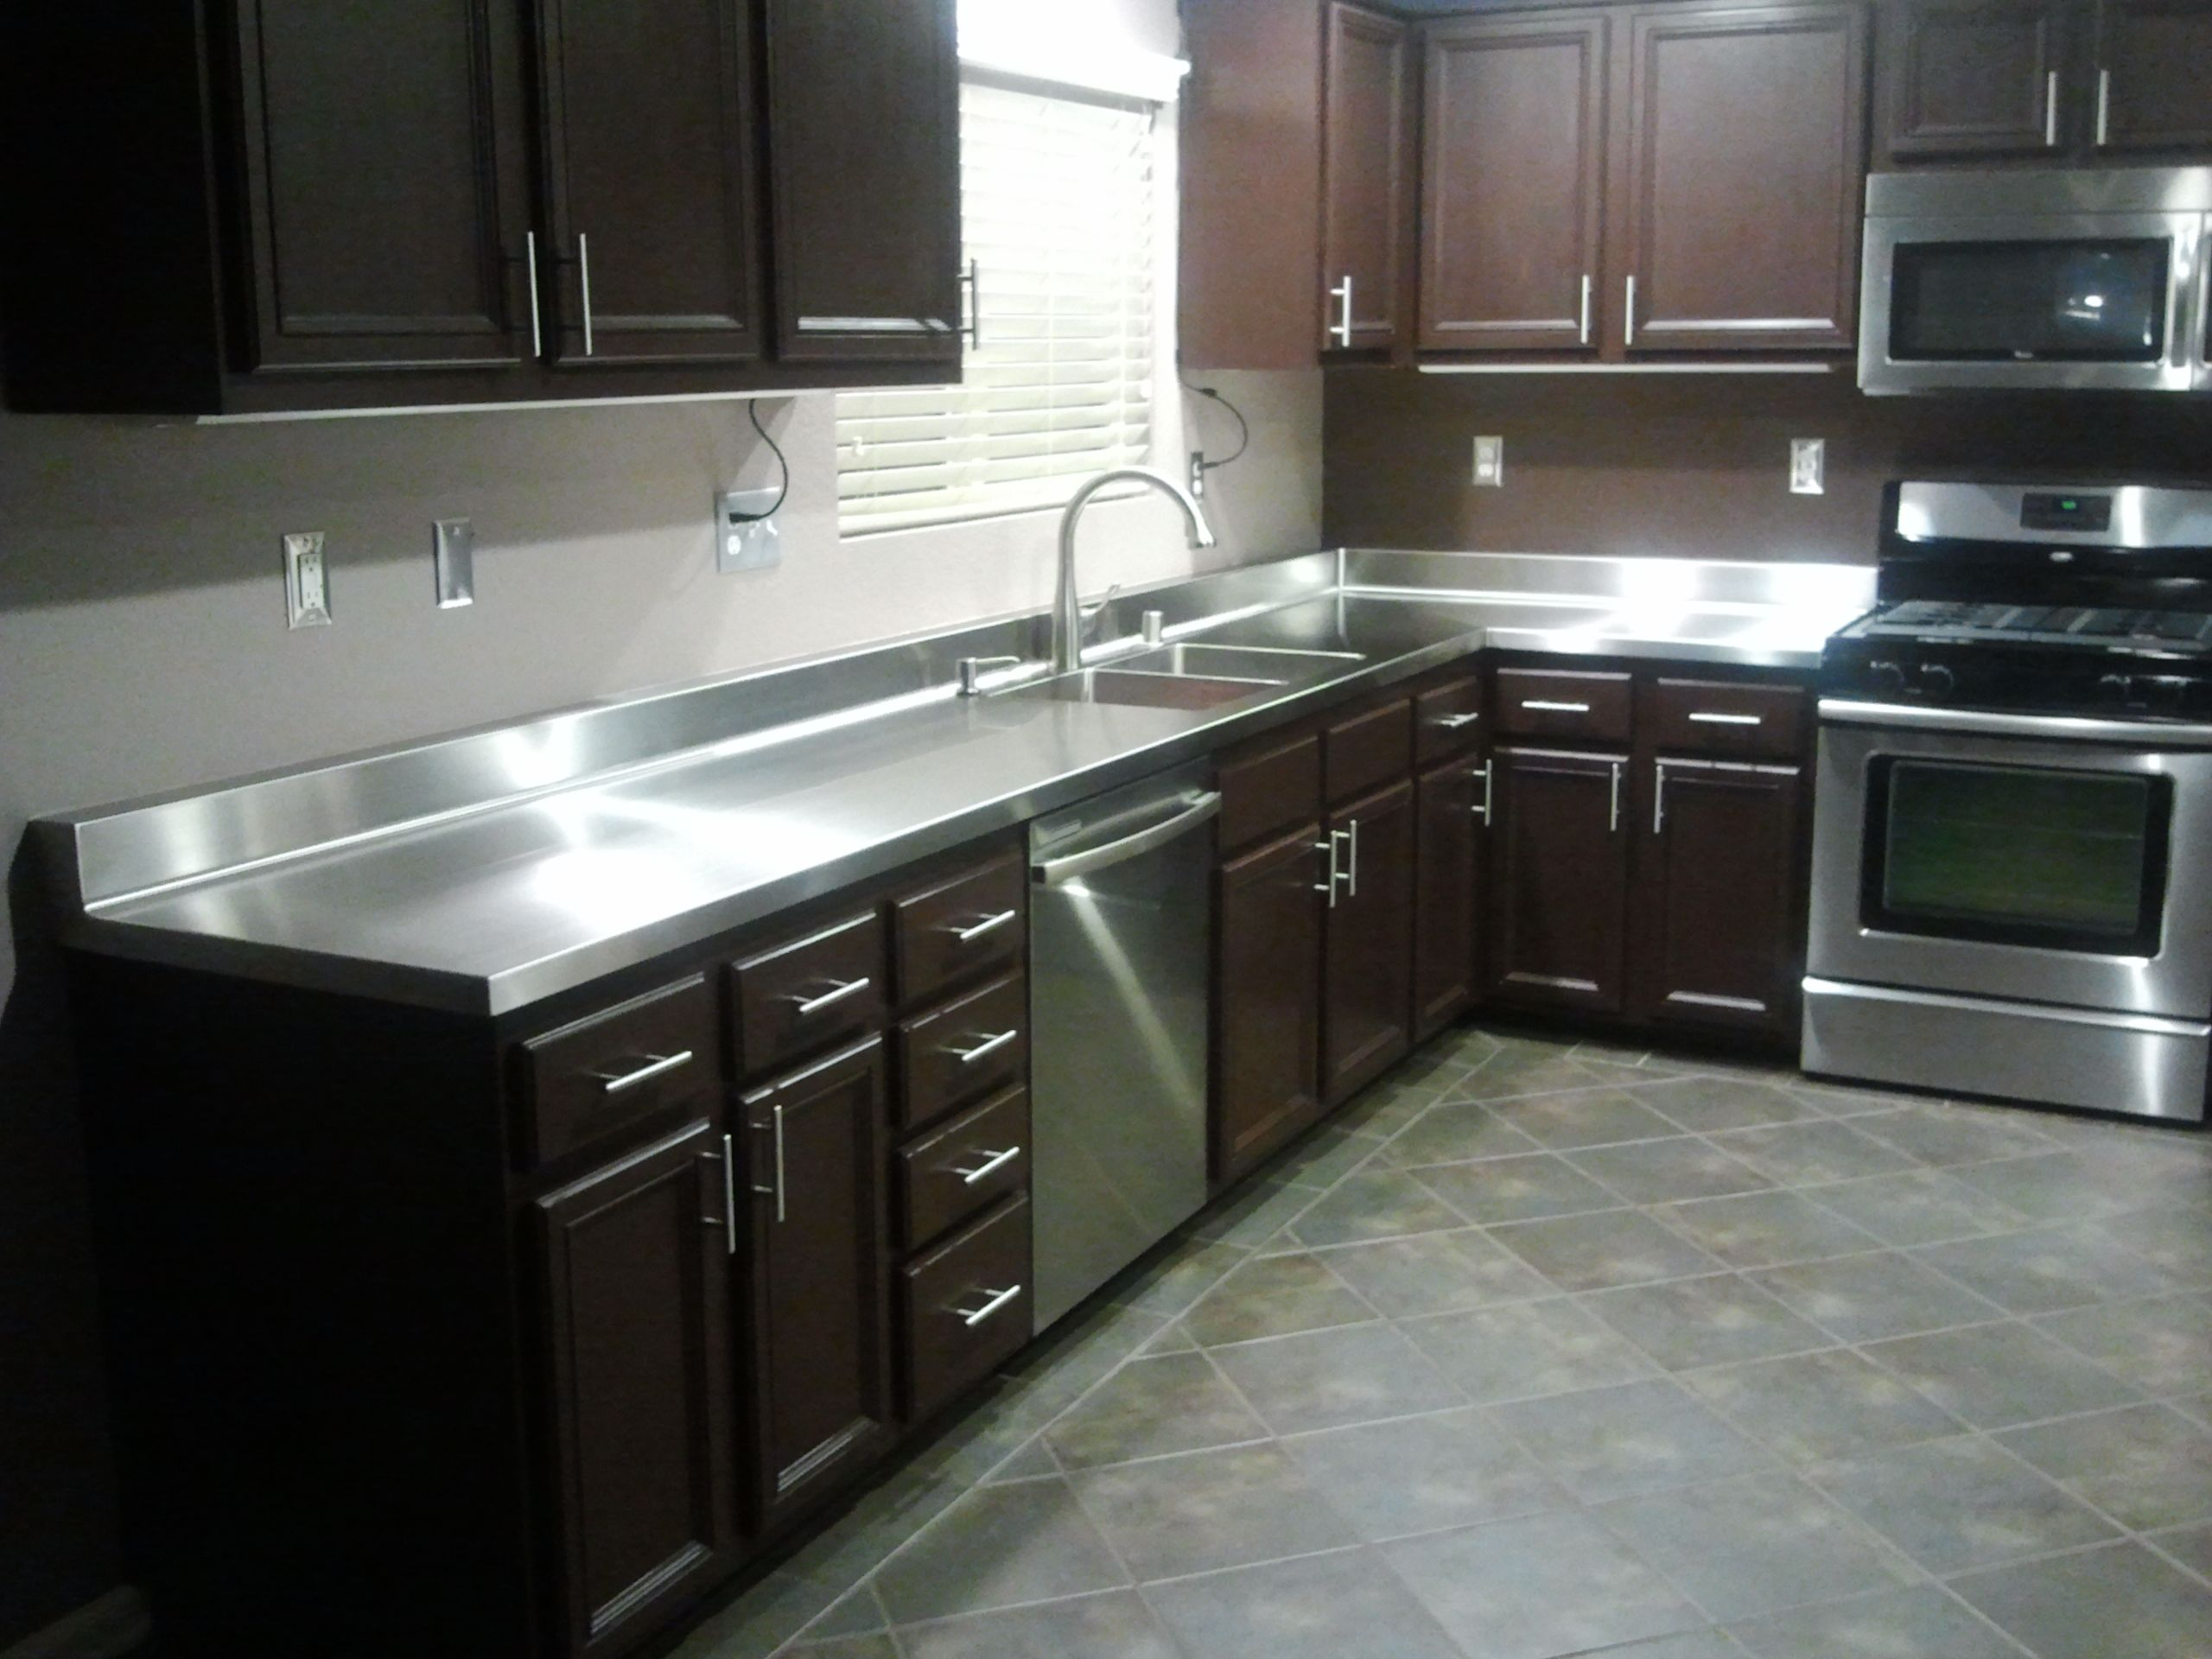 Black Metal Kitchen Cabinets Overstock Island Stainless Steel Countertops 2560x1920 Fab Wright Inc